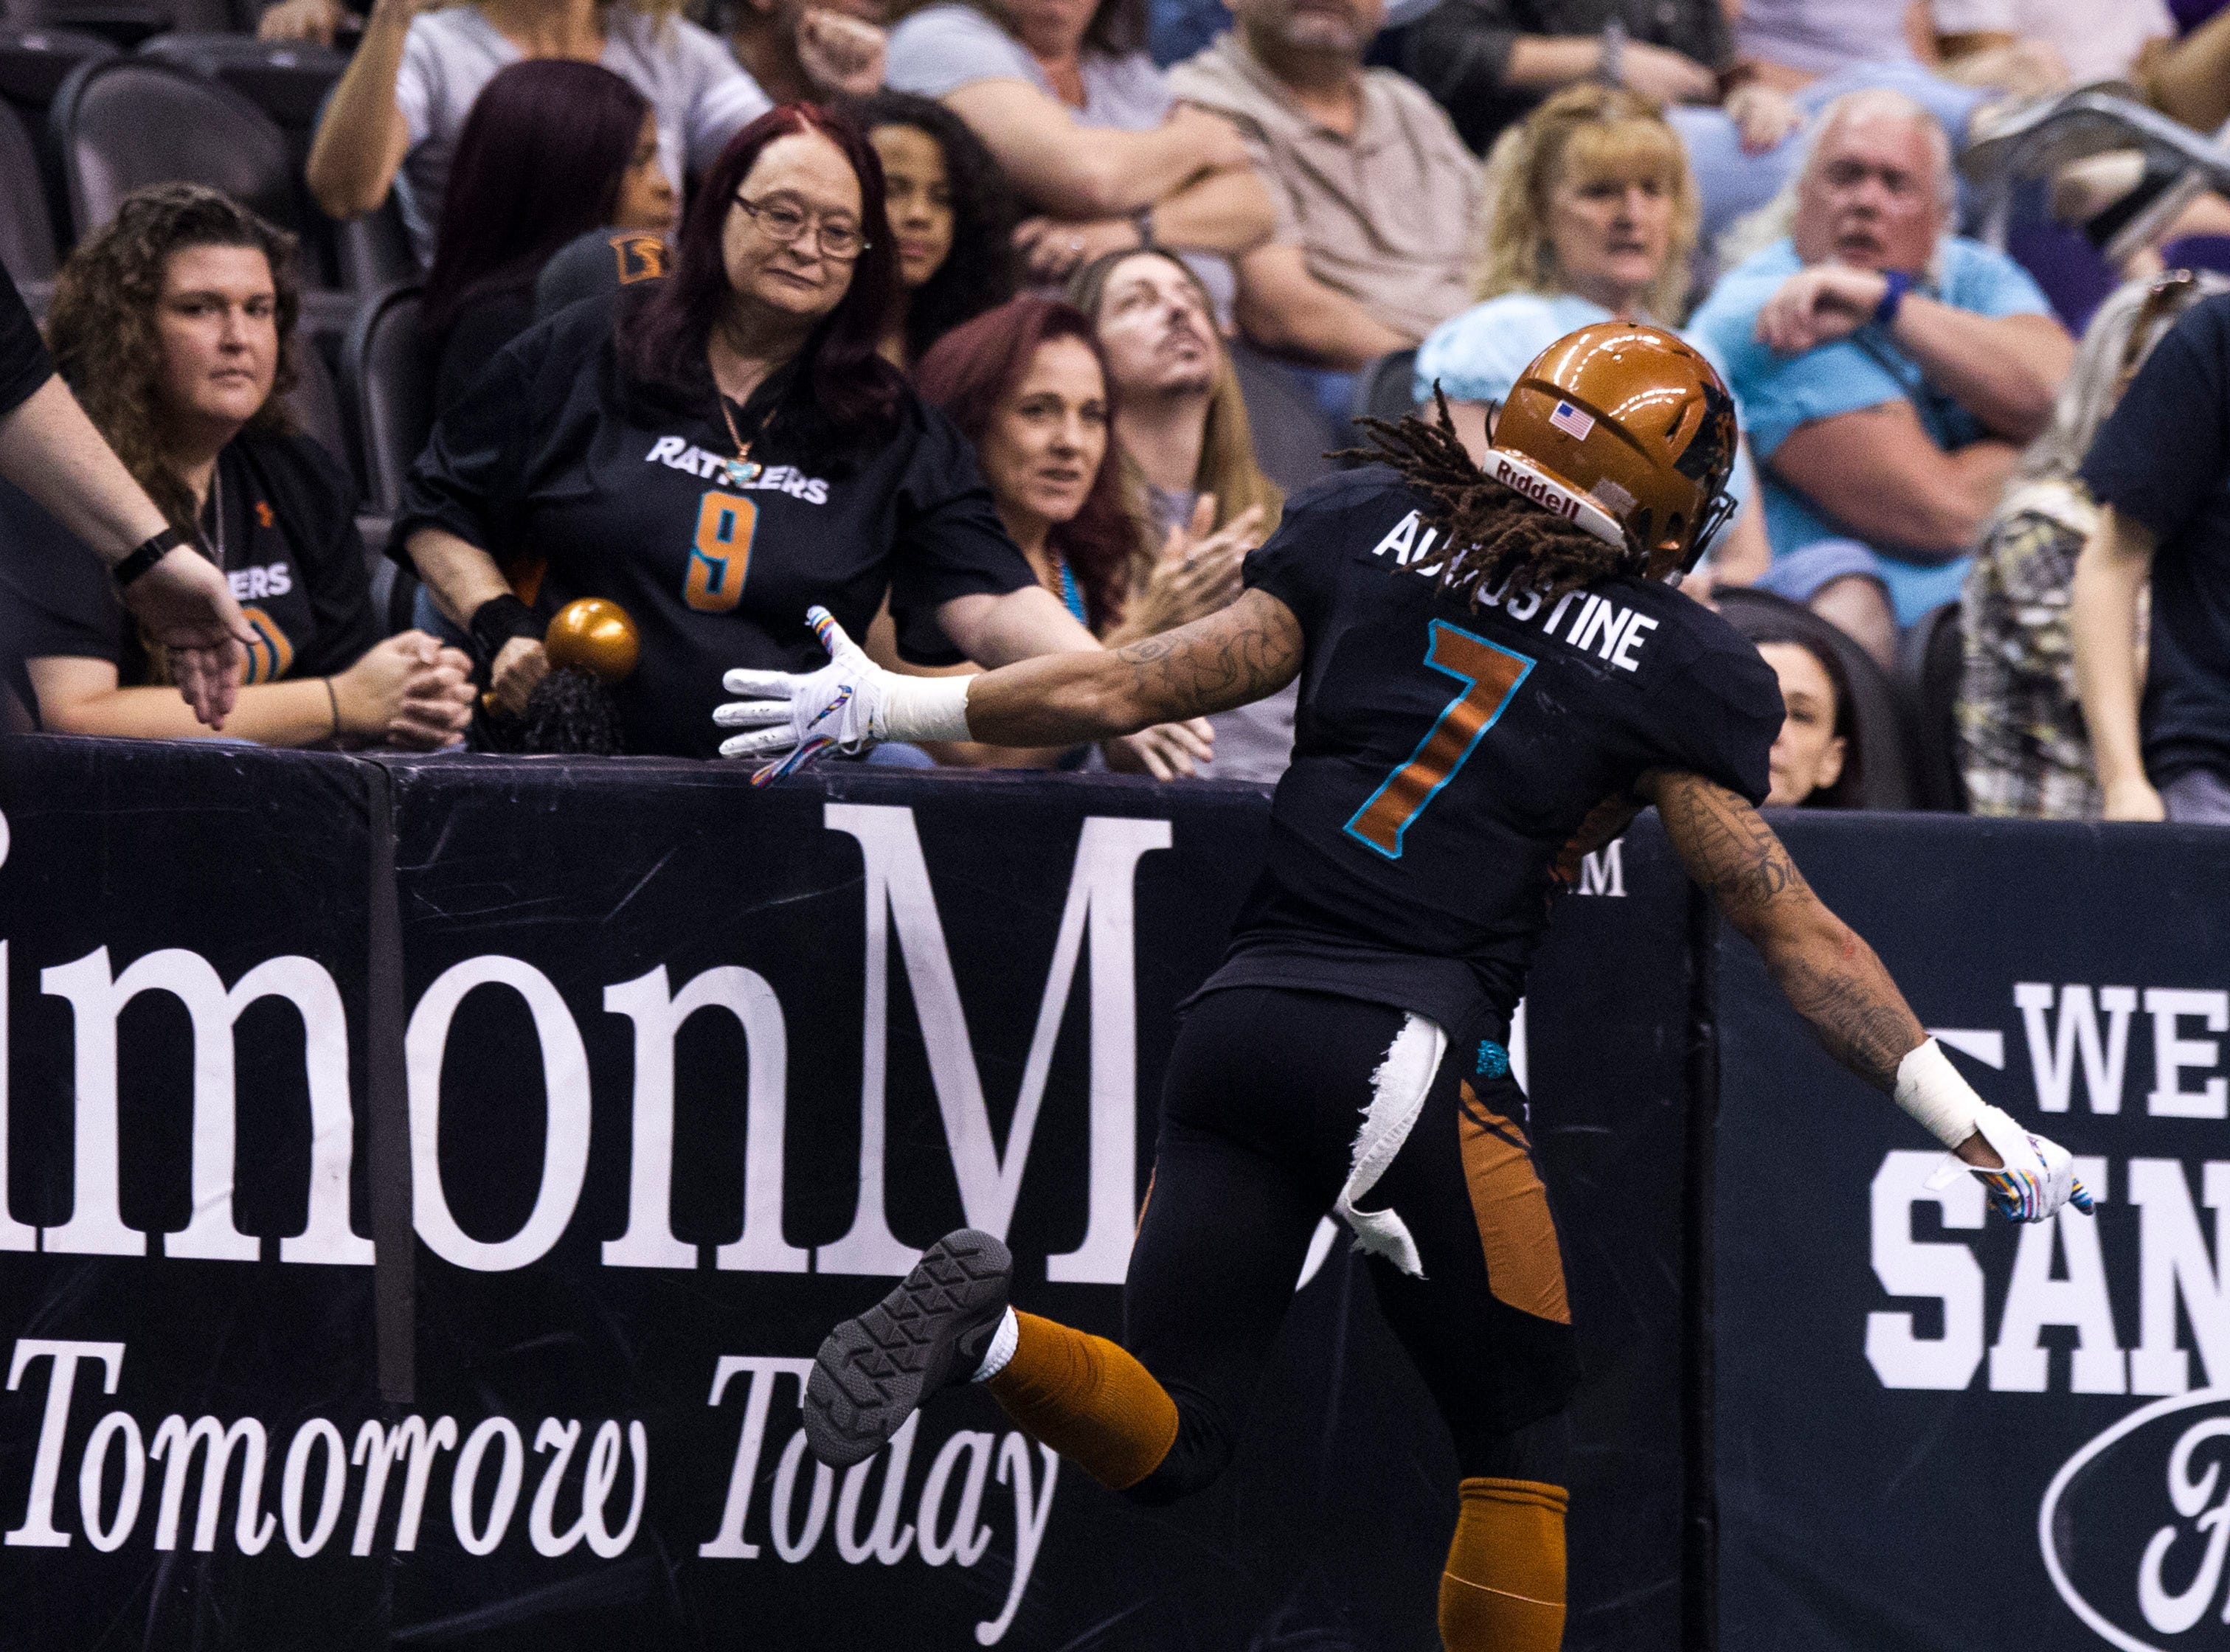 Arizona Rattlers' Sheldon Augustine (7) high five fans after scoring a touchdown against the San Diego Strike Force during the second half of their game at Talking Stick Resort Arena in Phoenix Friday, April. 6, 2019.